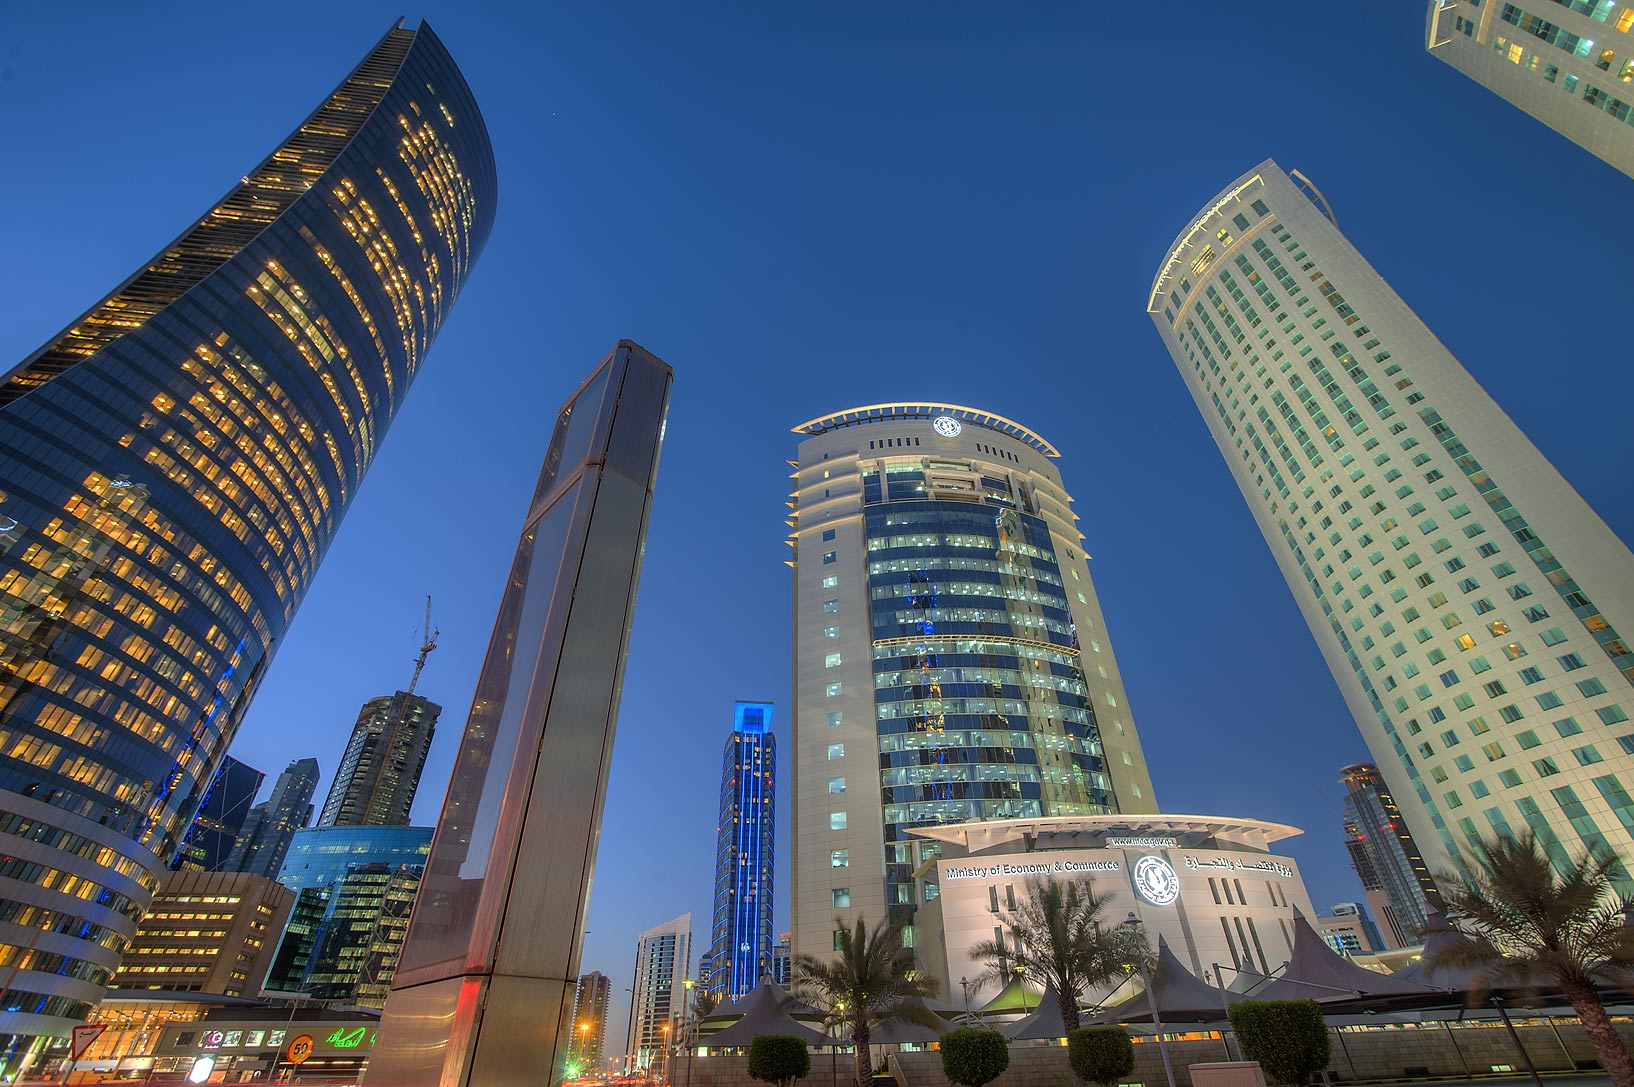 Ministry of Economy and Commerce in West Bay from Al Funduq St.. Doha, Qatar